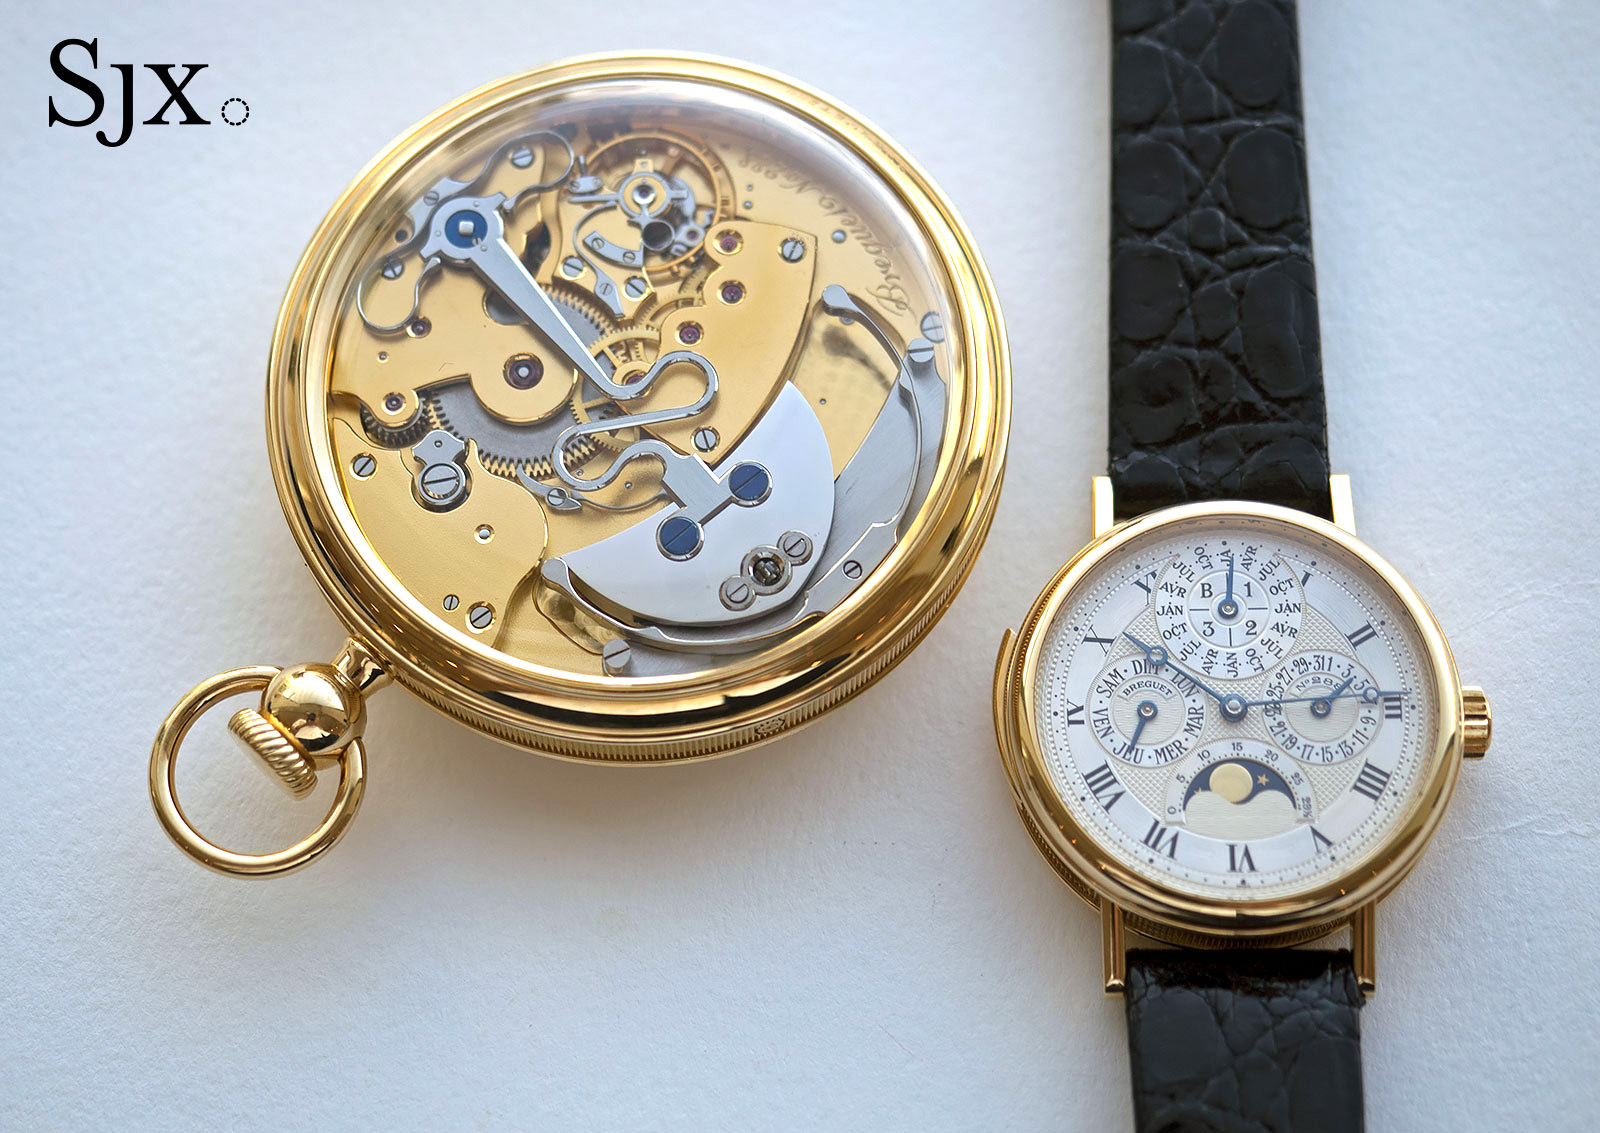 Breguet Souscription set Christies yellow gold